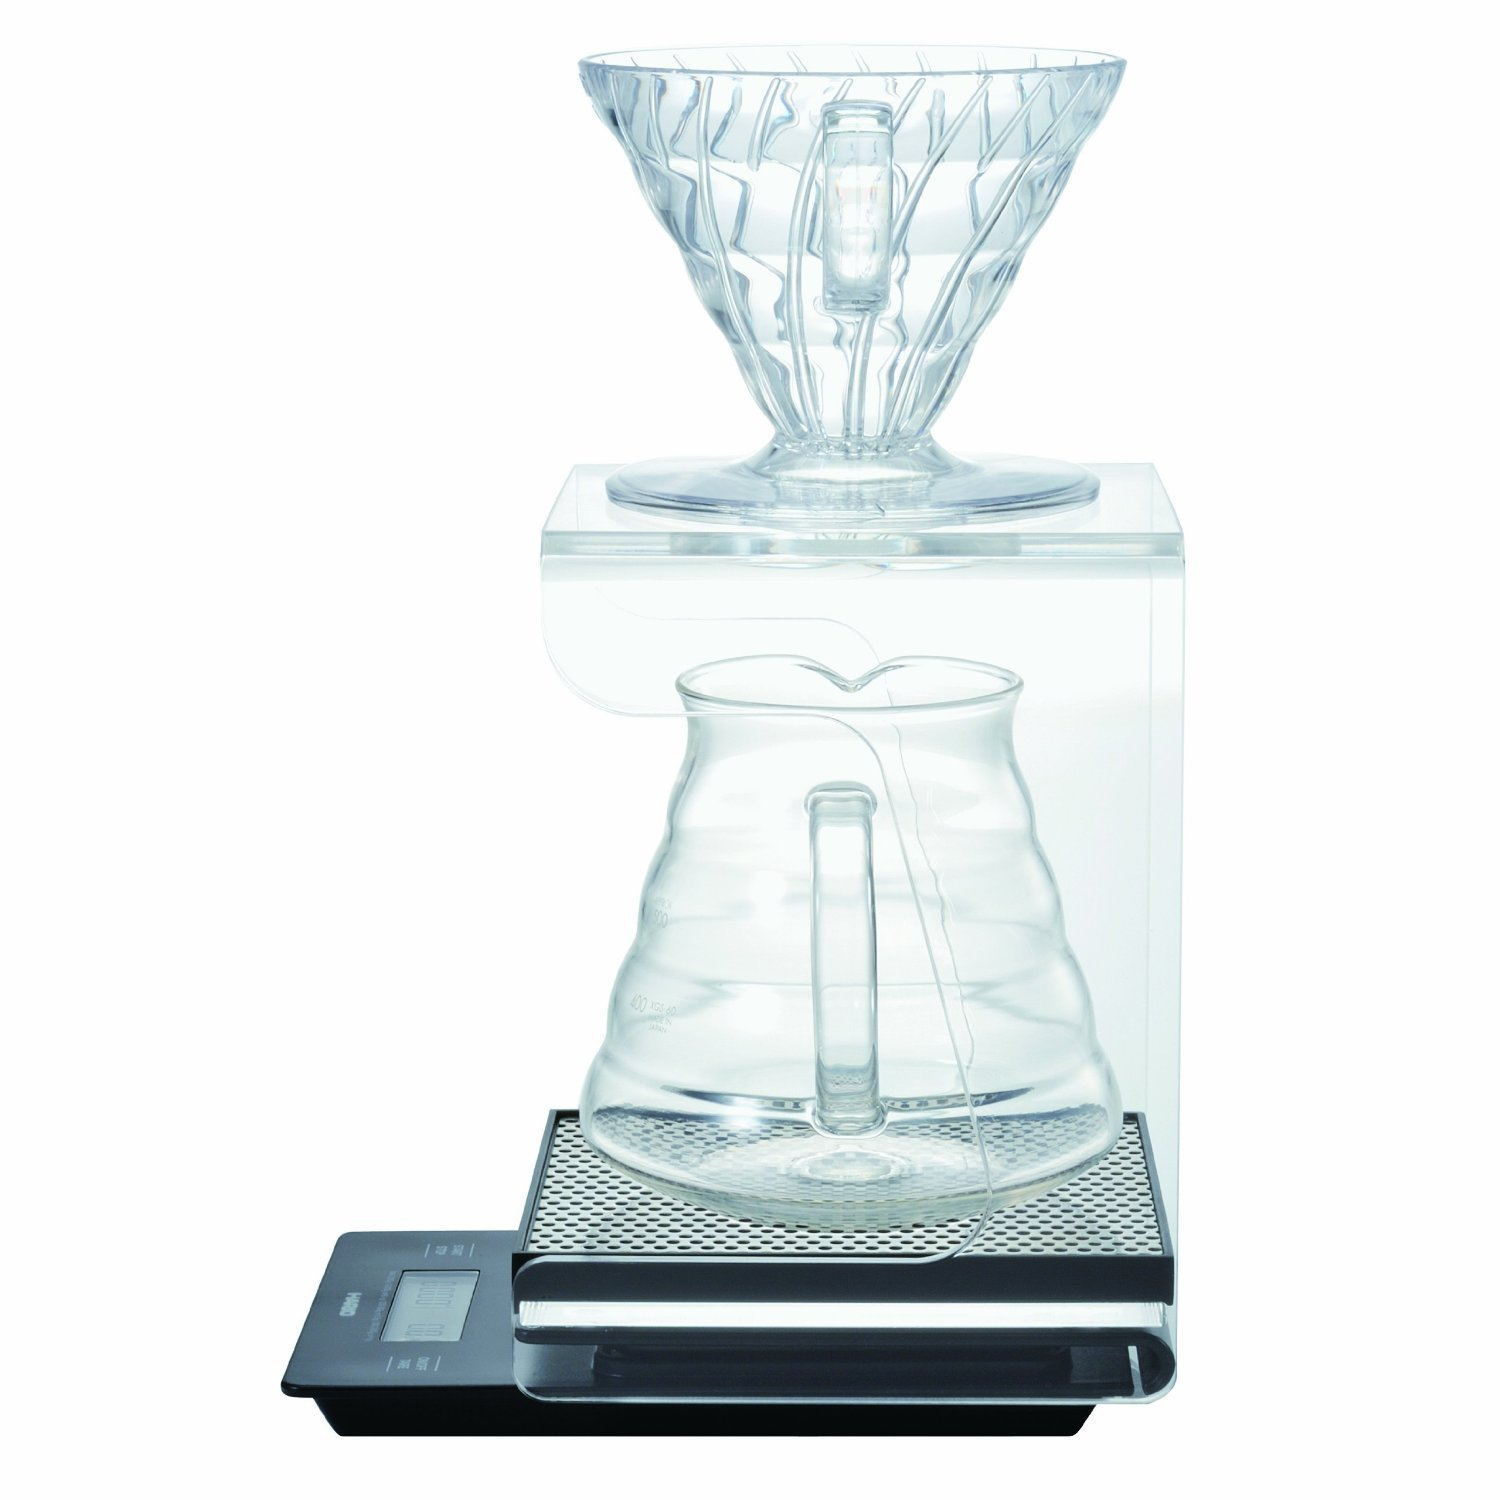 Hario V60 Complete Coffee Brewing Set - Scale, Brewer Set & Stand by Hario (Image #3)